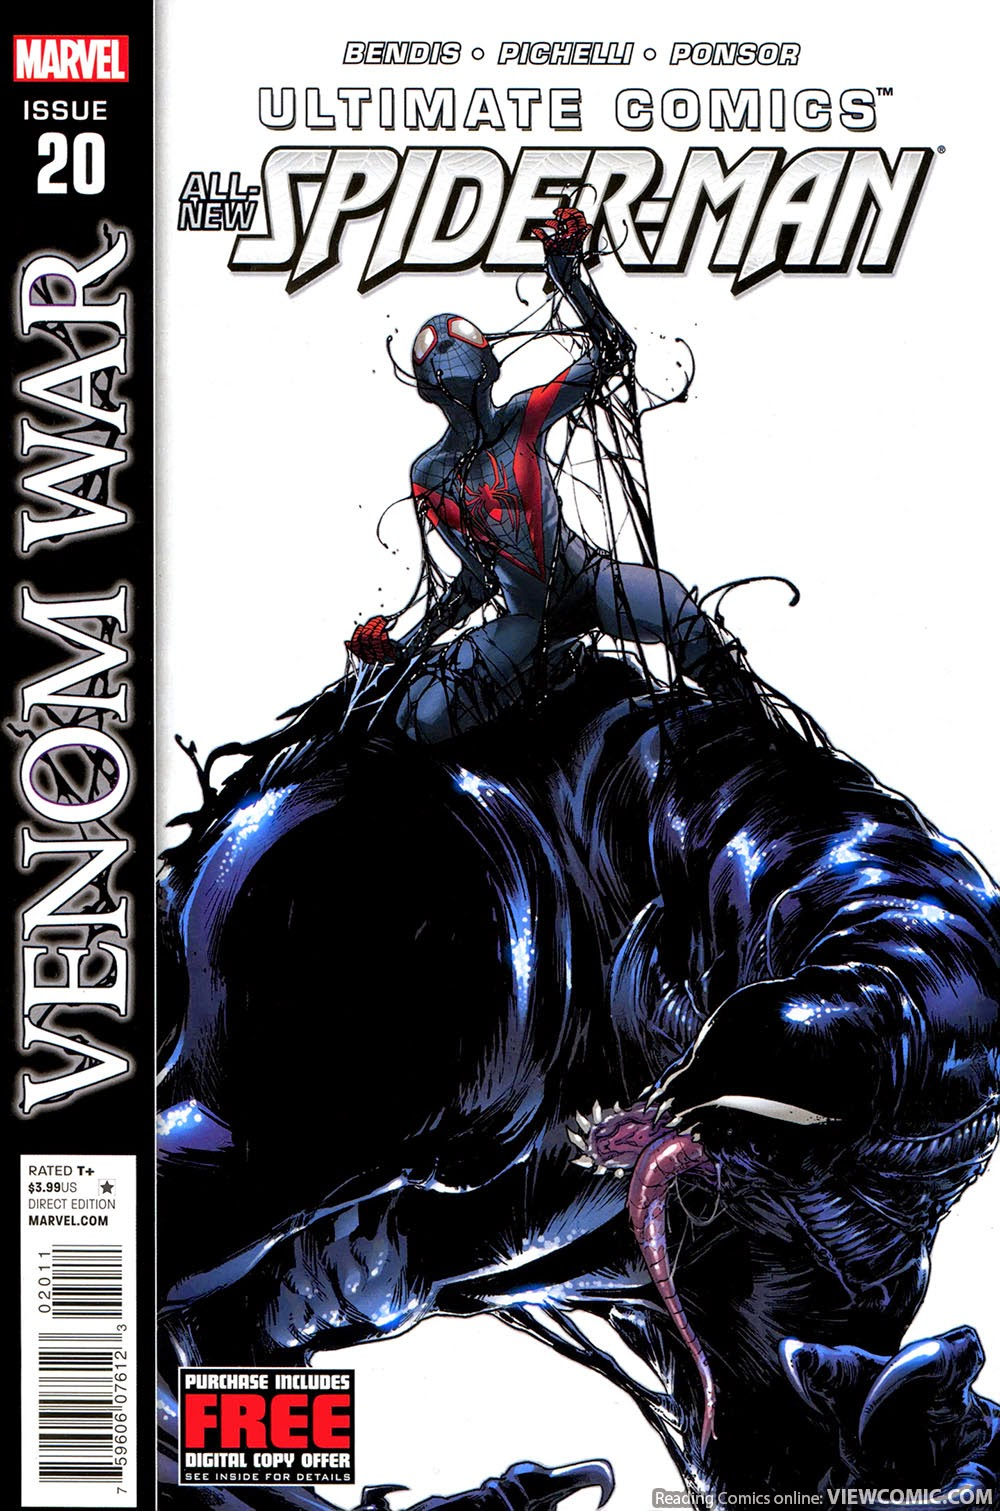 ultimate comics all new spider man v2 020 2013 view comic. Black Bedroom Furniture Sets. Home Design Ideas